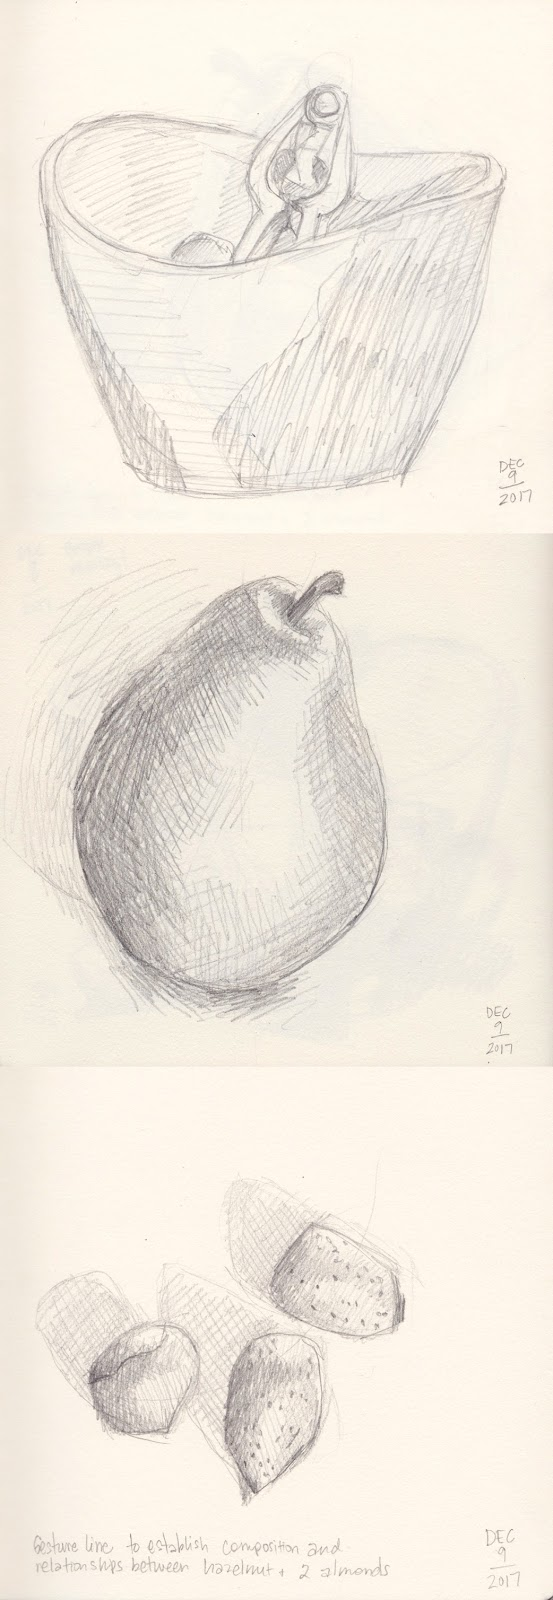 Daily Art 12-9-17 still life sketch in graphite number 61-63 - bowl pear nuts